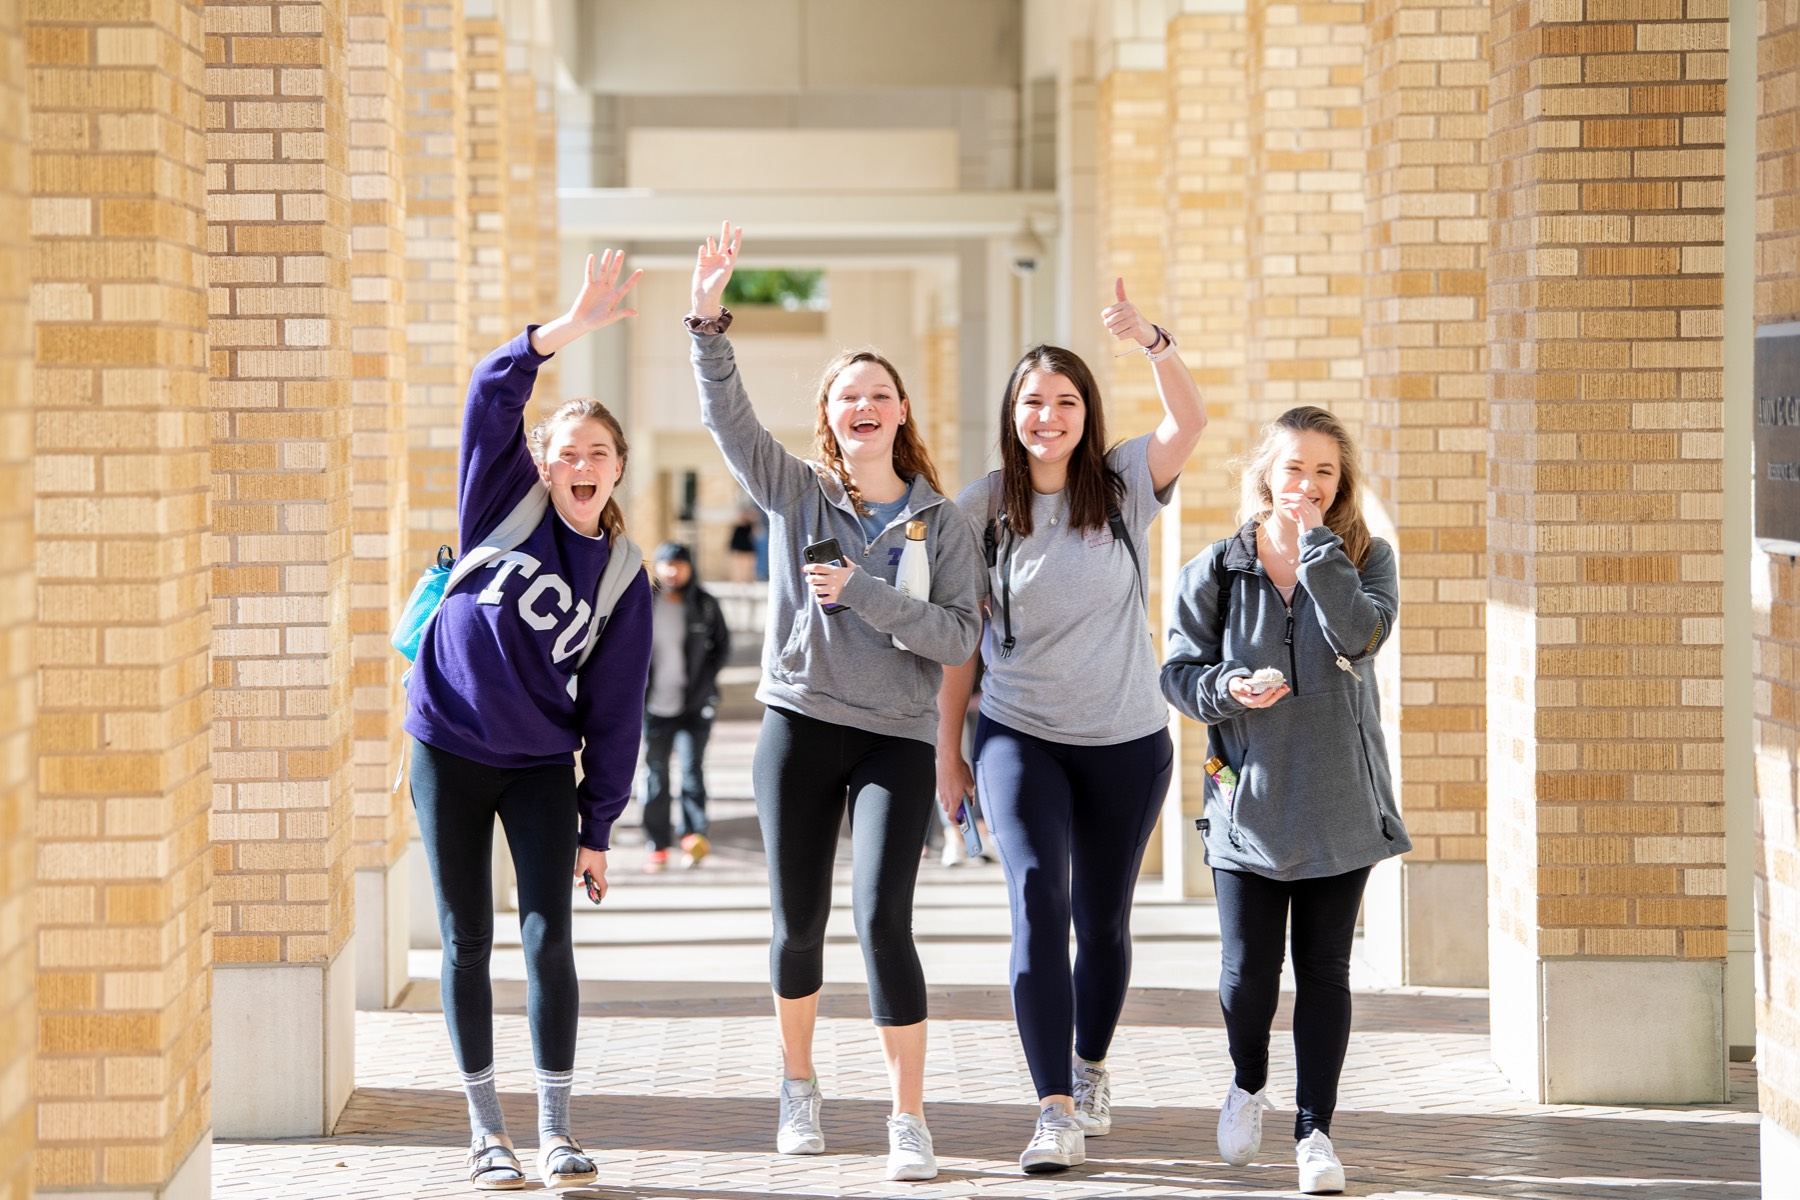 Students wave at the camera